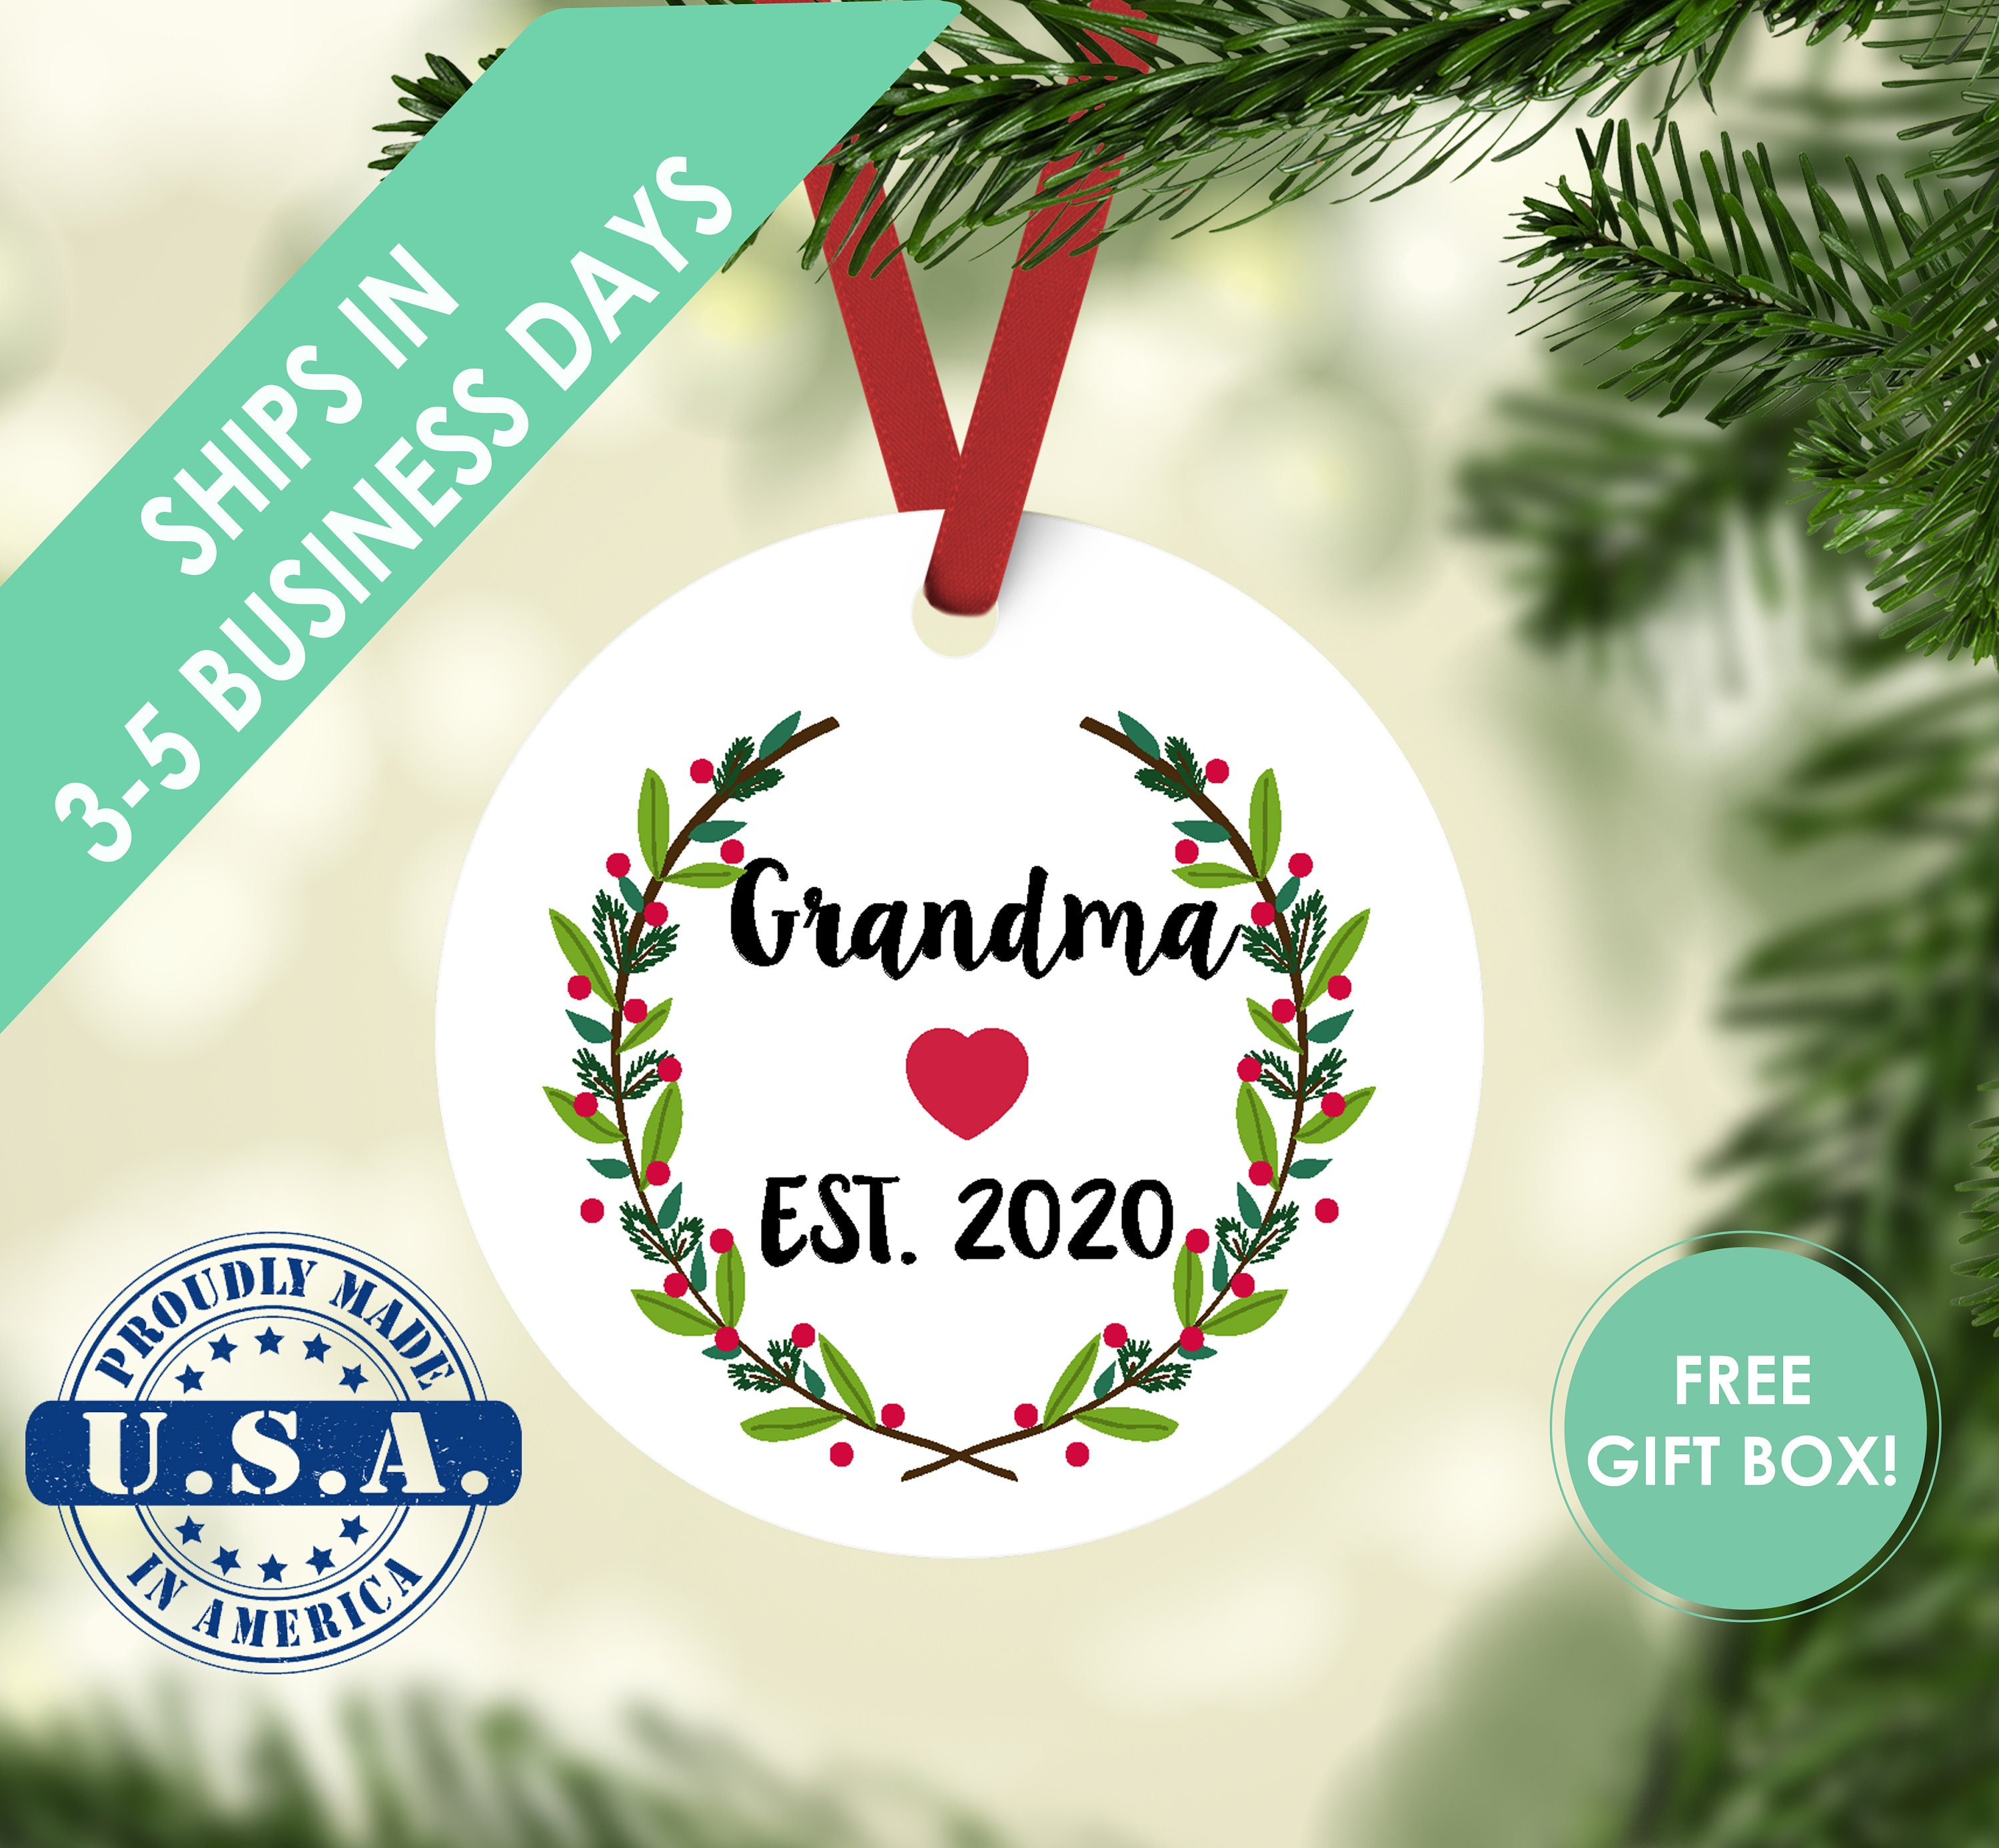 Customize Your Own! 1st Time Grandma 2018 Ornaments You Can Personalize